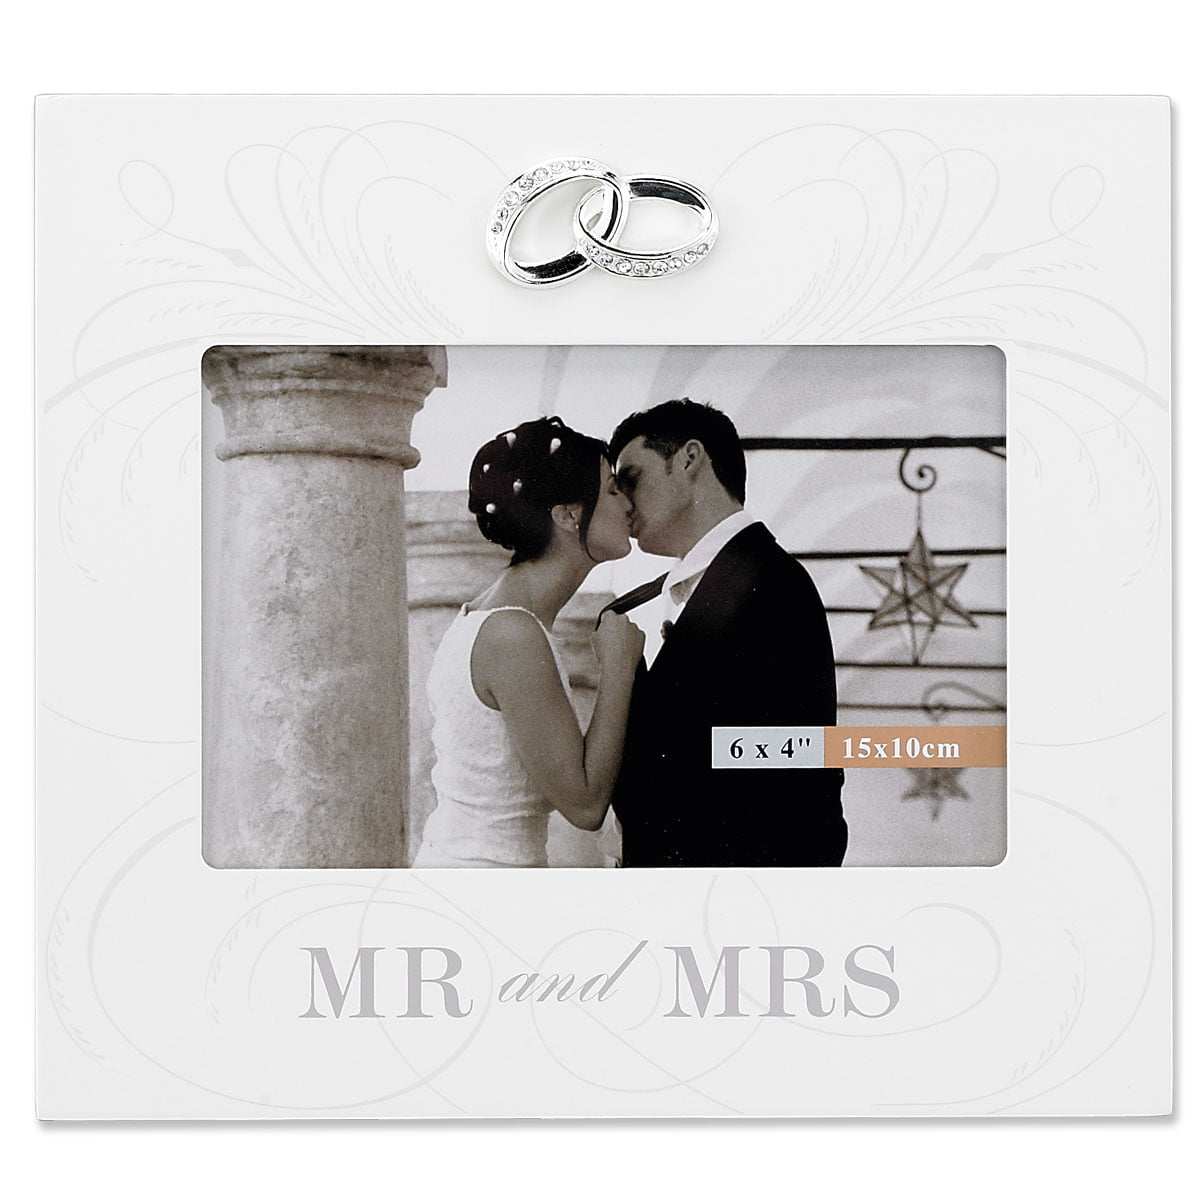 6x4 Ivory Wood Mr. And Mrs. Wedding Picture Frame Silver Interlocked Rings Ornament with... by Lawrence Frames